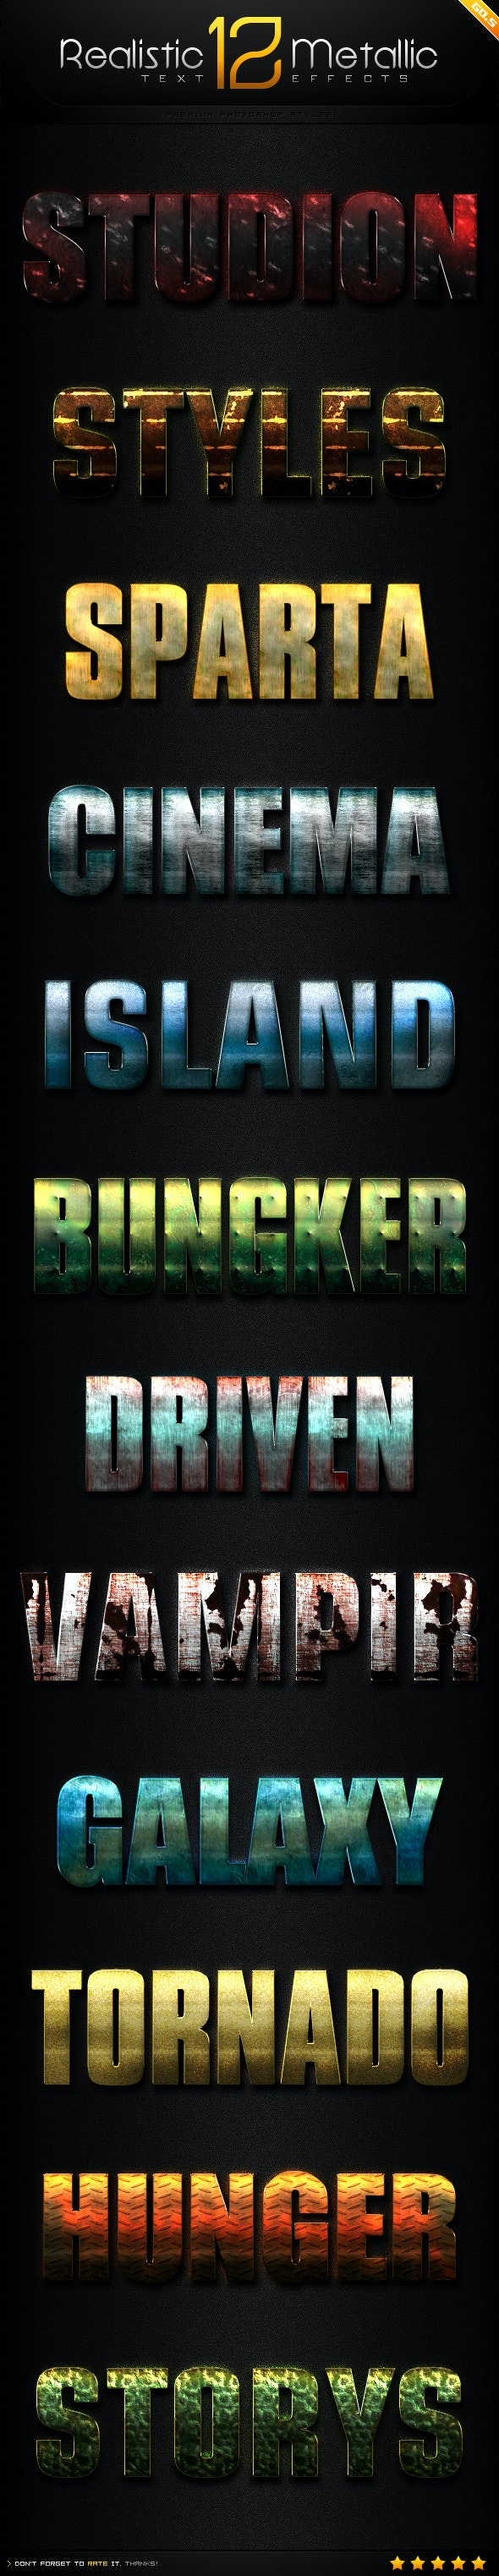 12 Realistic Metallic Text Effect Styles GO.5 - Text Effects Styles